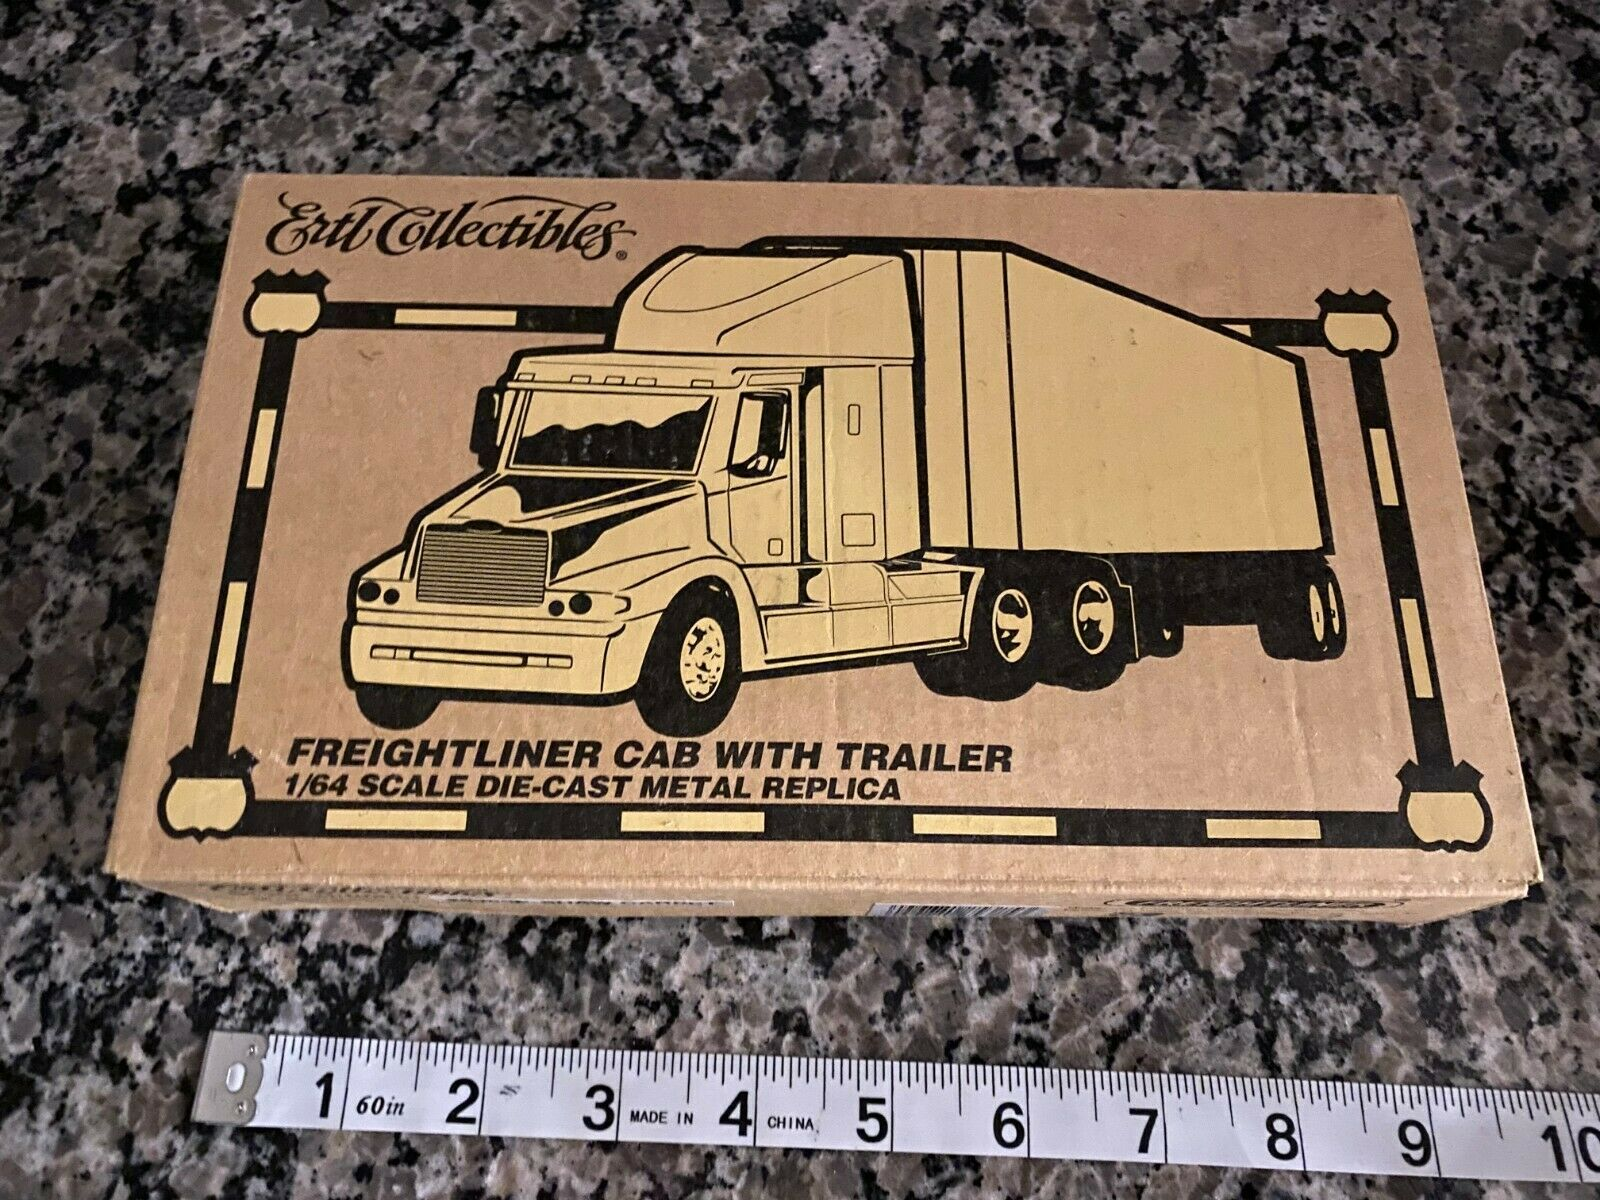 Ertl Collectibles Freightliner Cab with Trailer 1/64 scale Die-Cast  MINT NIB!!!